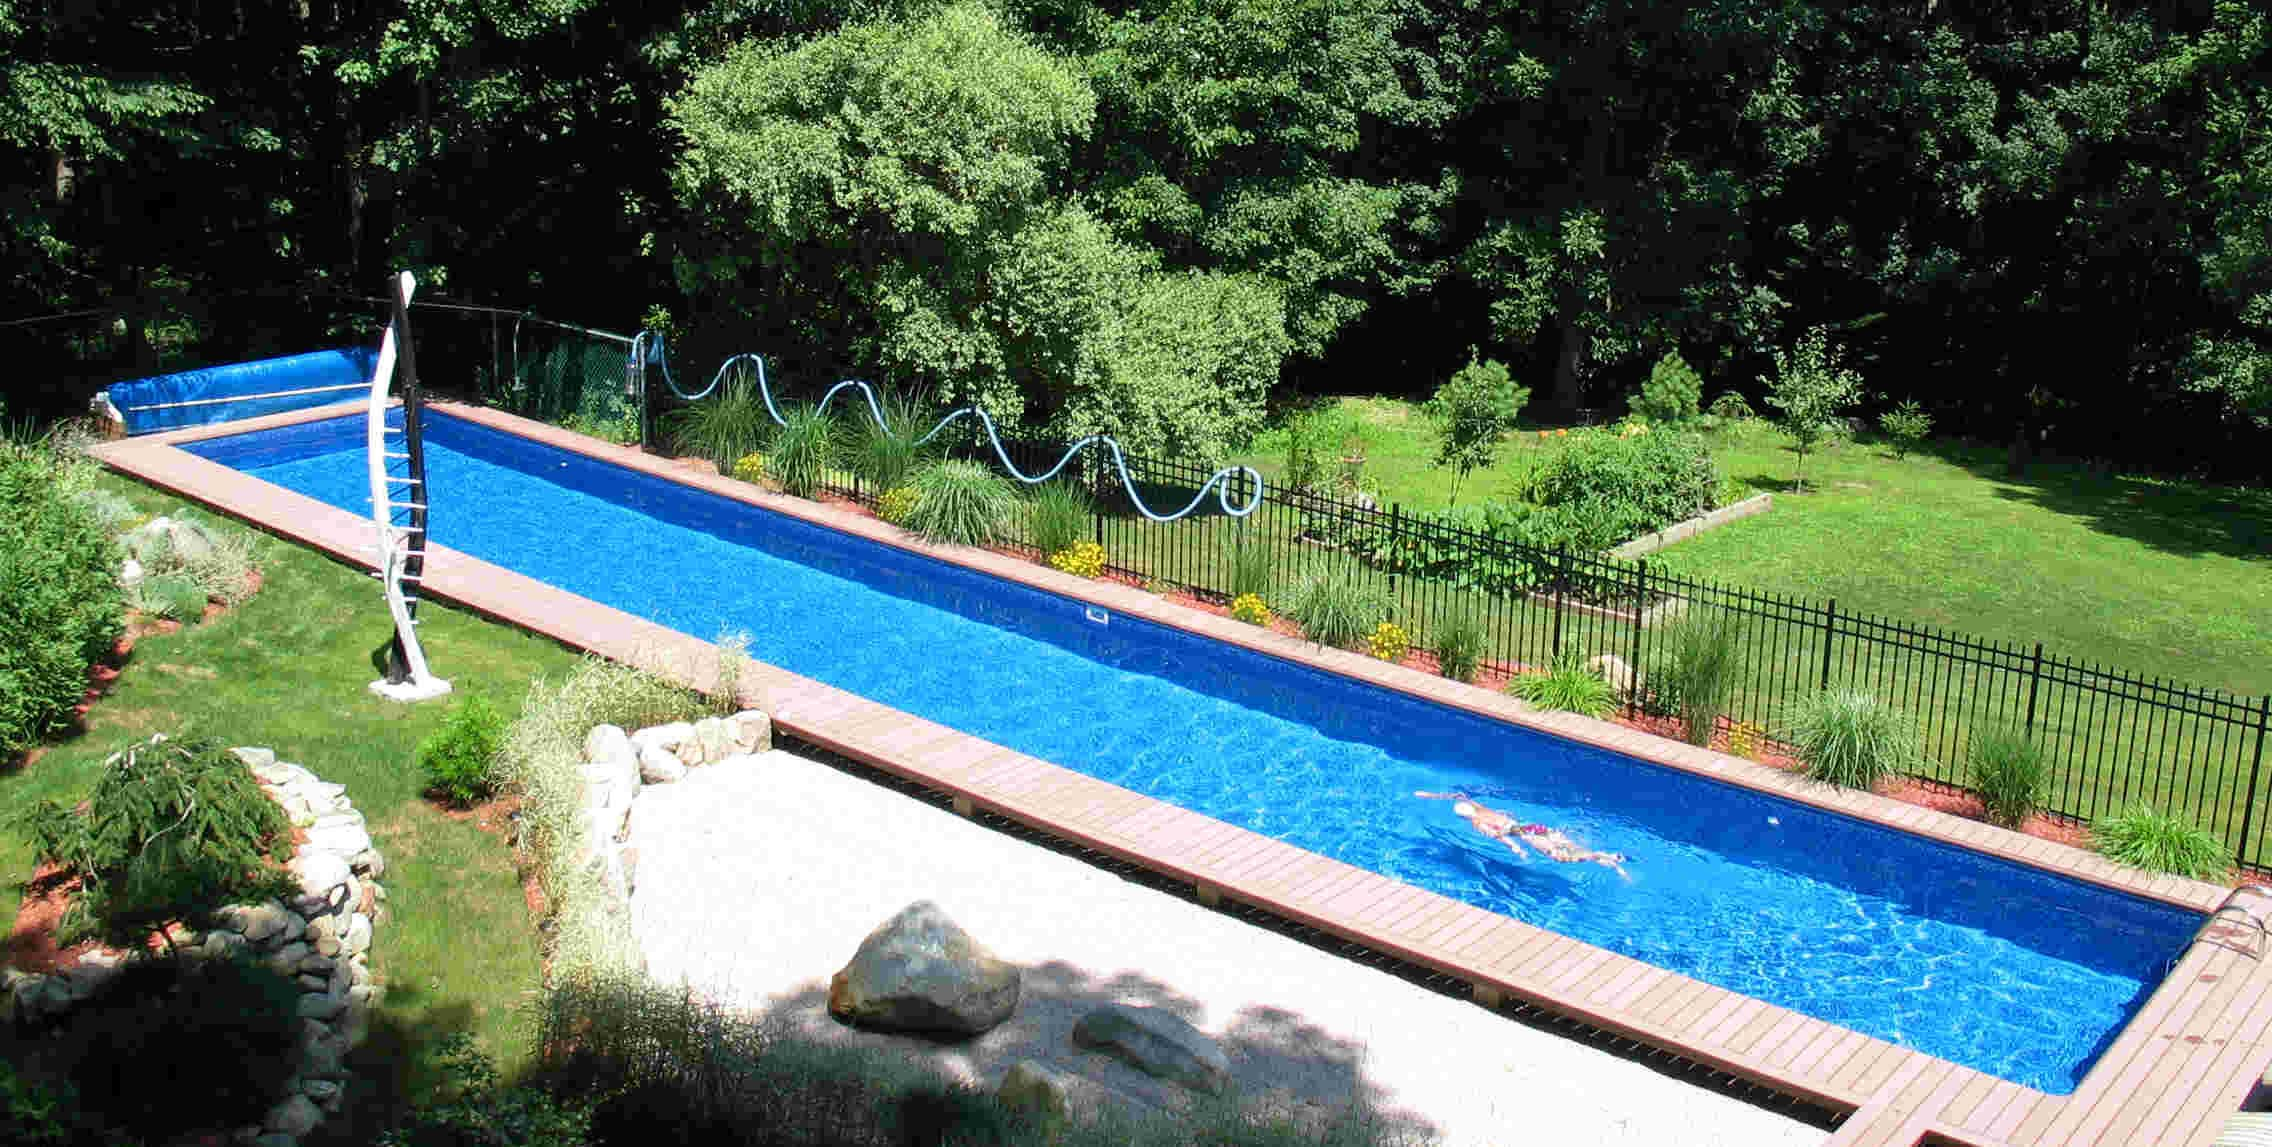 Diy inground swimming pool backyard design ideas for Backyard inground pool designs